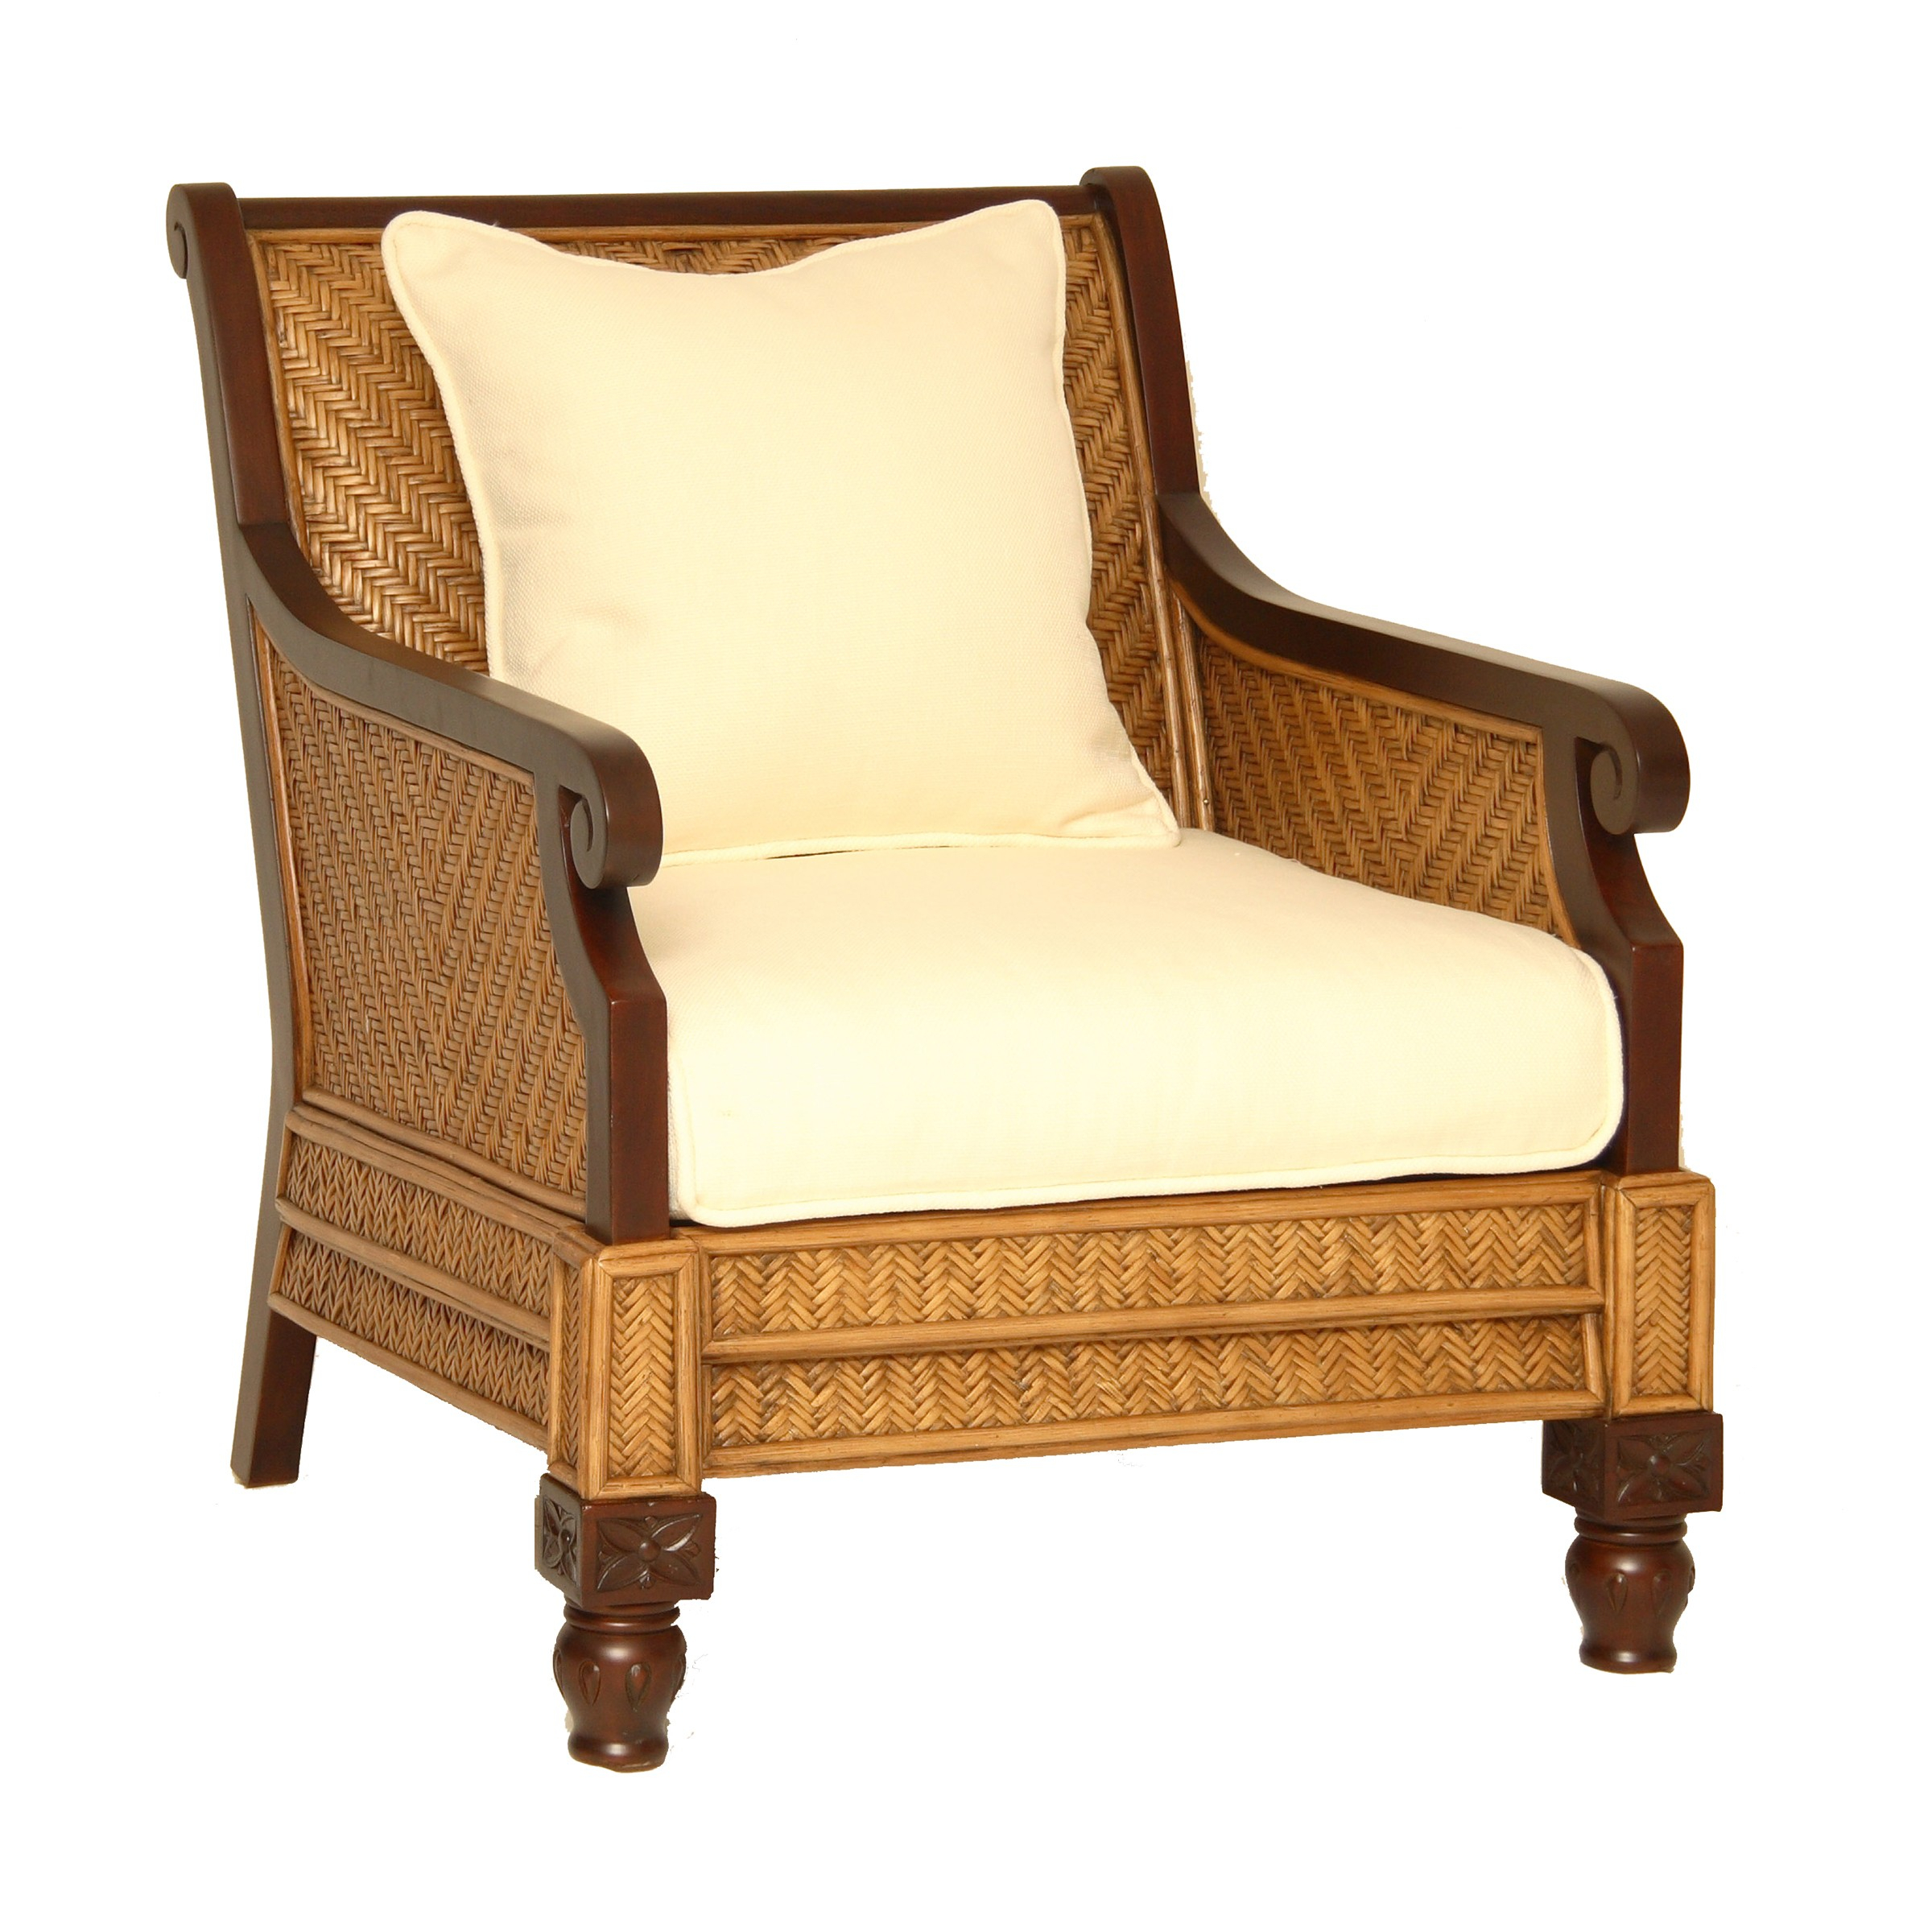 Padma's Plantation Trinidad Arm Chair | Live Well Stores For Liv Arm Sofa Chairs (View 19 of 25)